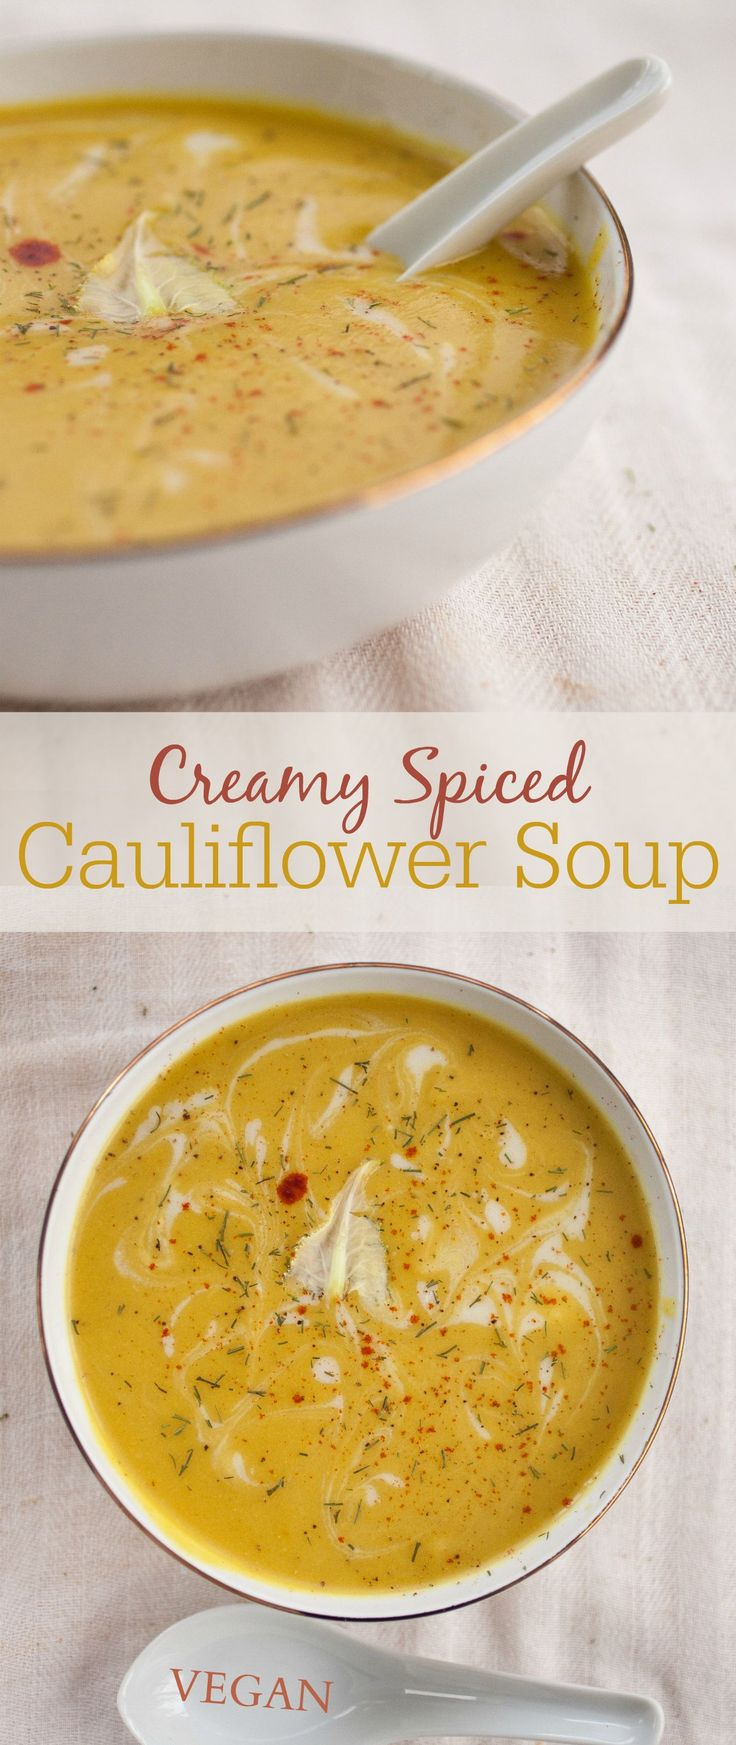 This coconut-creamed cauliflower soup is infused with aromatic spices like cumin, coriander, and turmeric. So good, it's the only cauliflower soup you'll ever want to make.